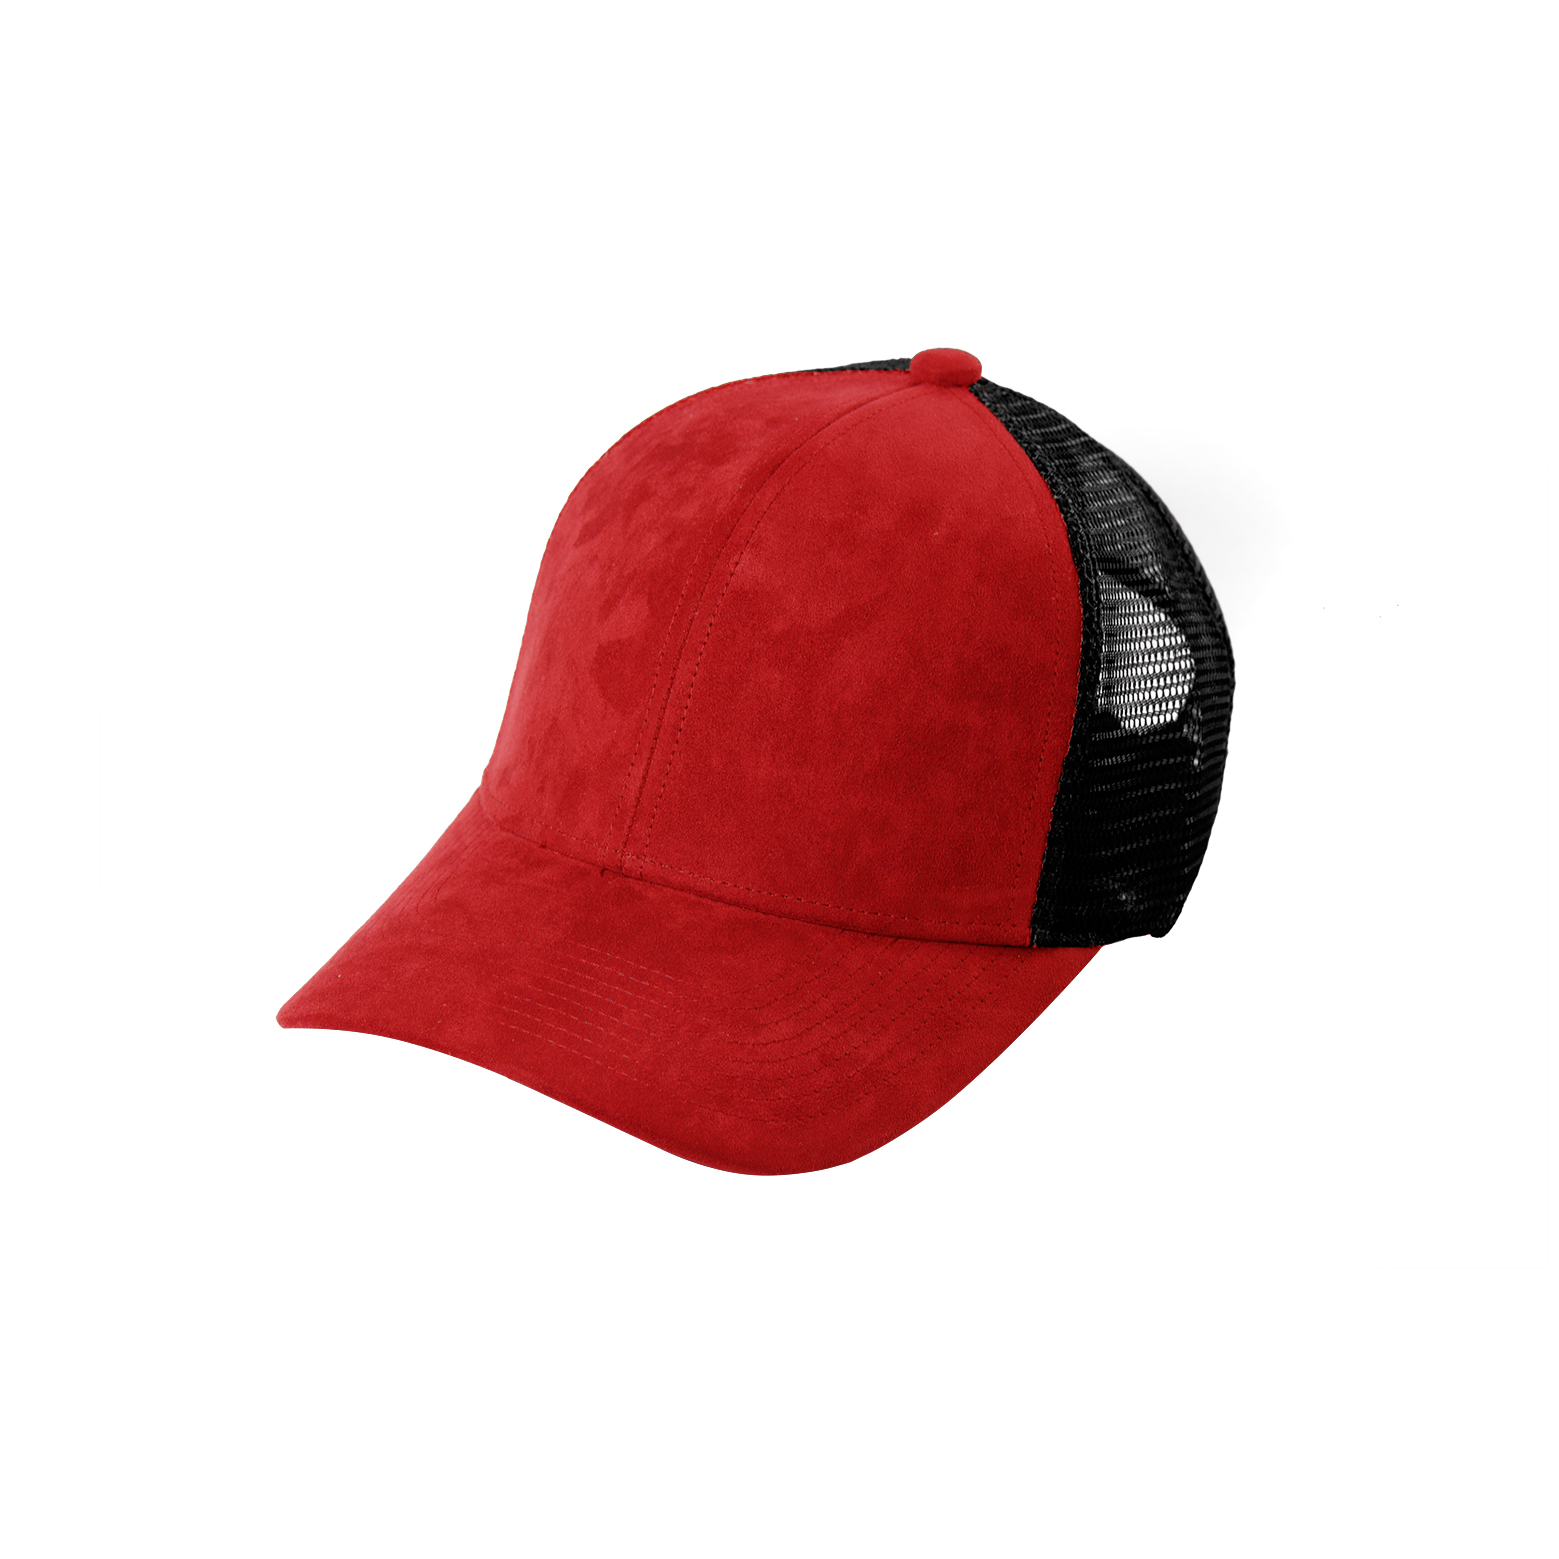 TRUCKER CAP ROUGE SUEDE FRONT SIDE